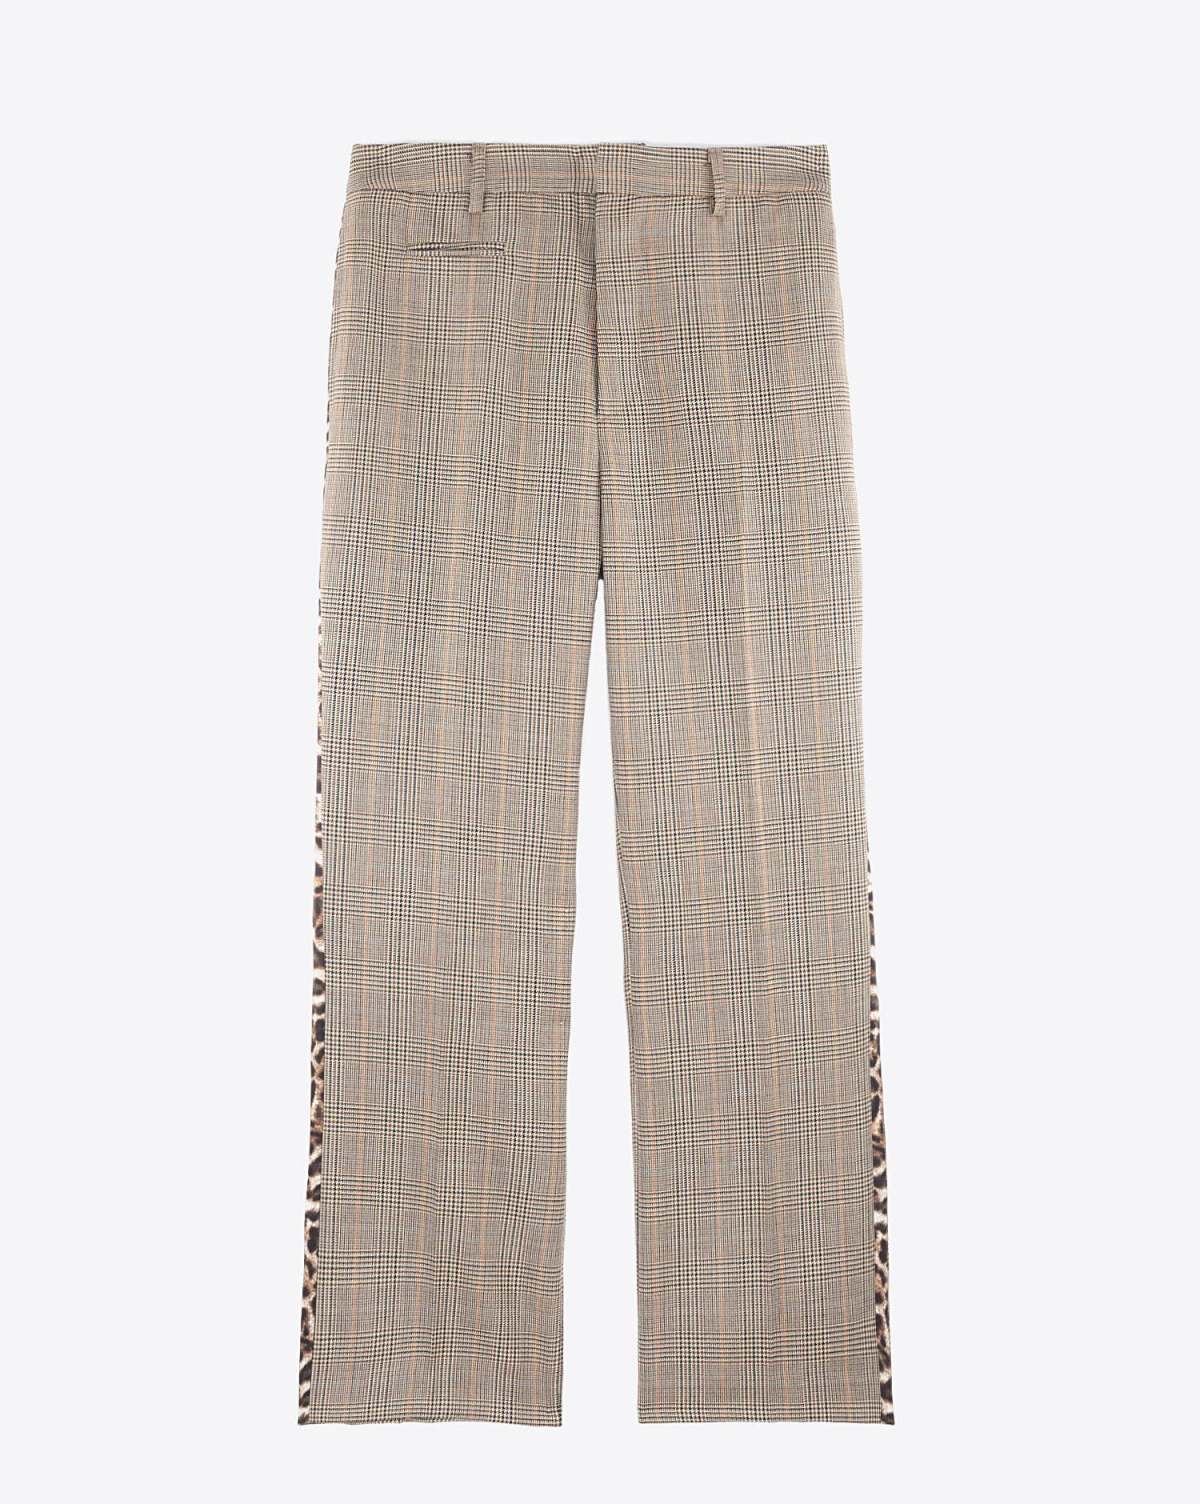 R13 Denim Pré-Collection Tuxedo Trouser - Brown Glenplaid W/Leopard